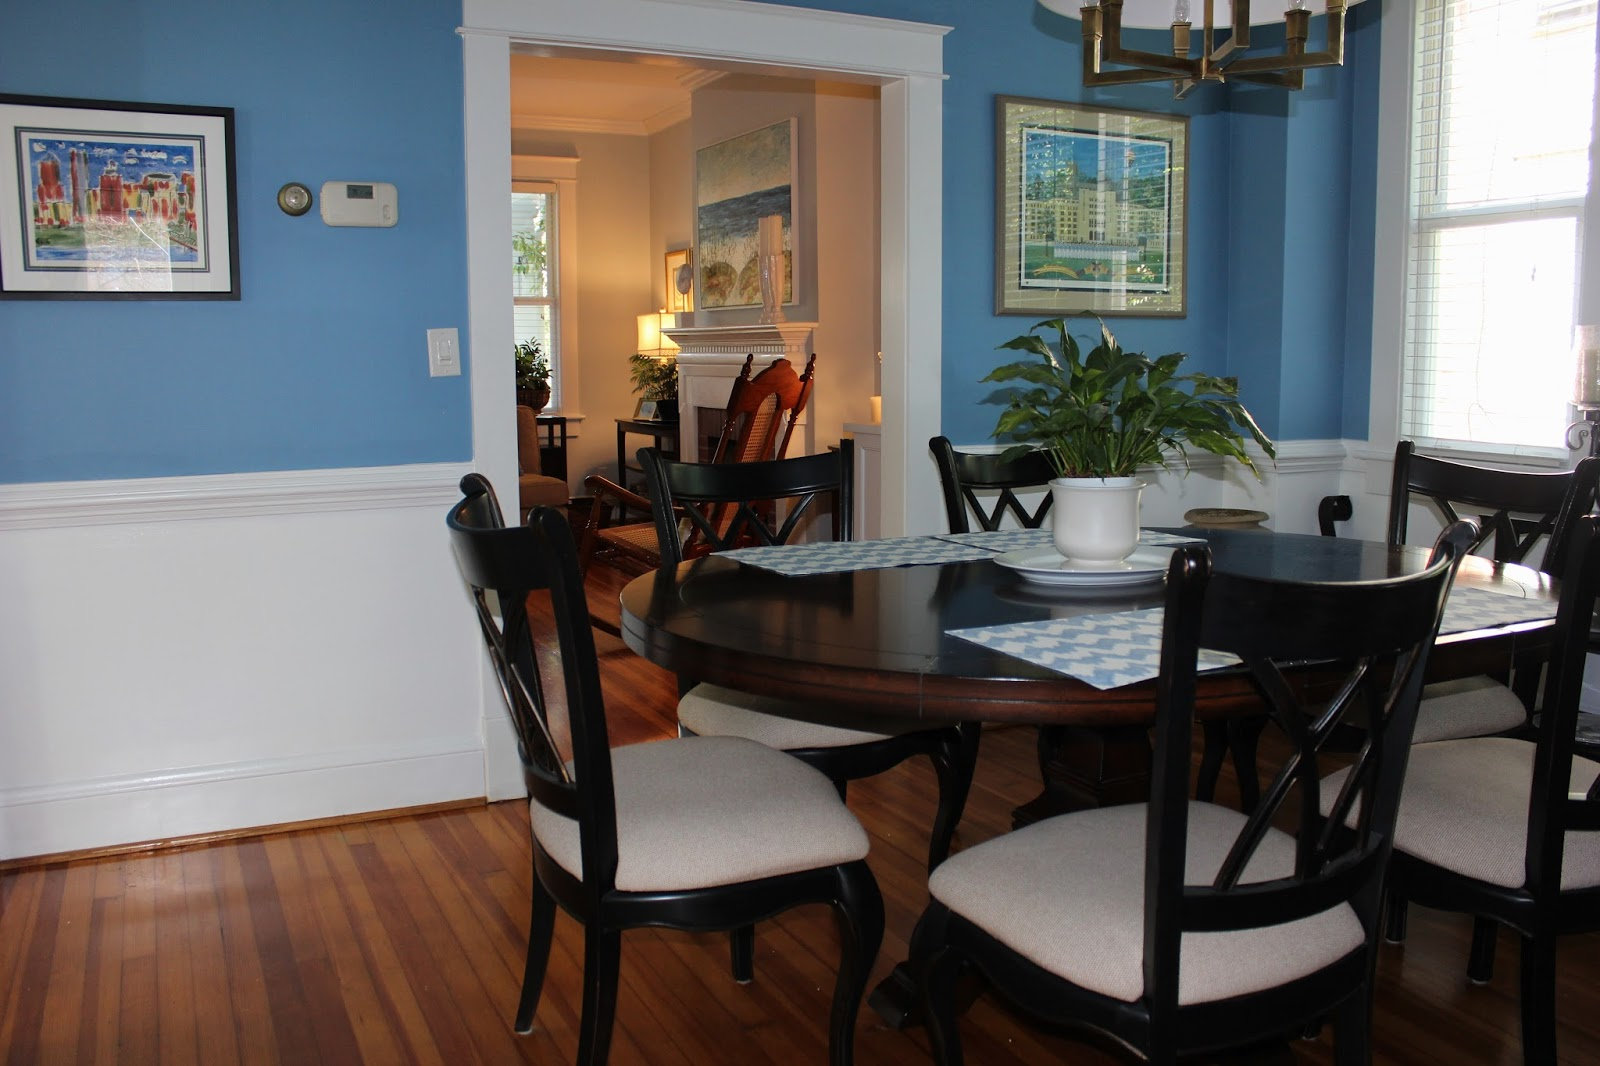 Sensational Mission Foursquare Another Room Off The To Do List Dailytribune Chair Design For Home Dailytribuneorg